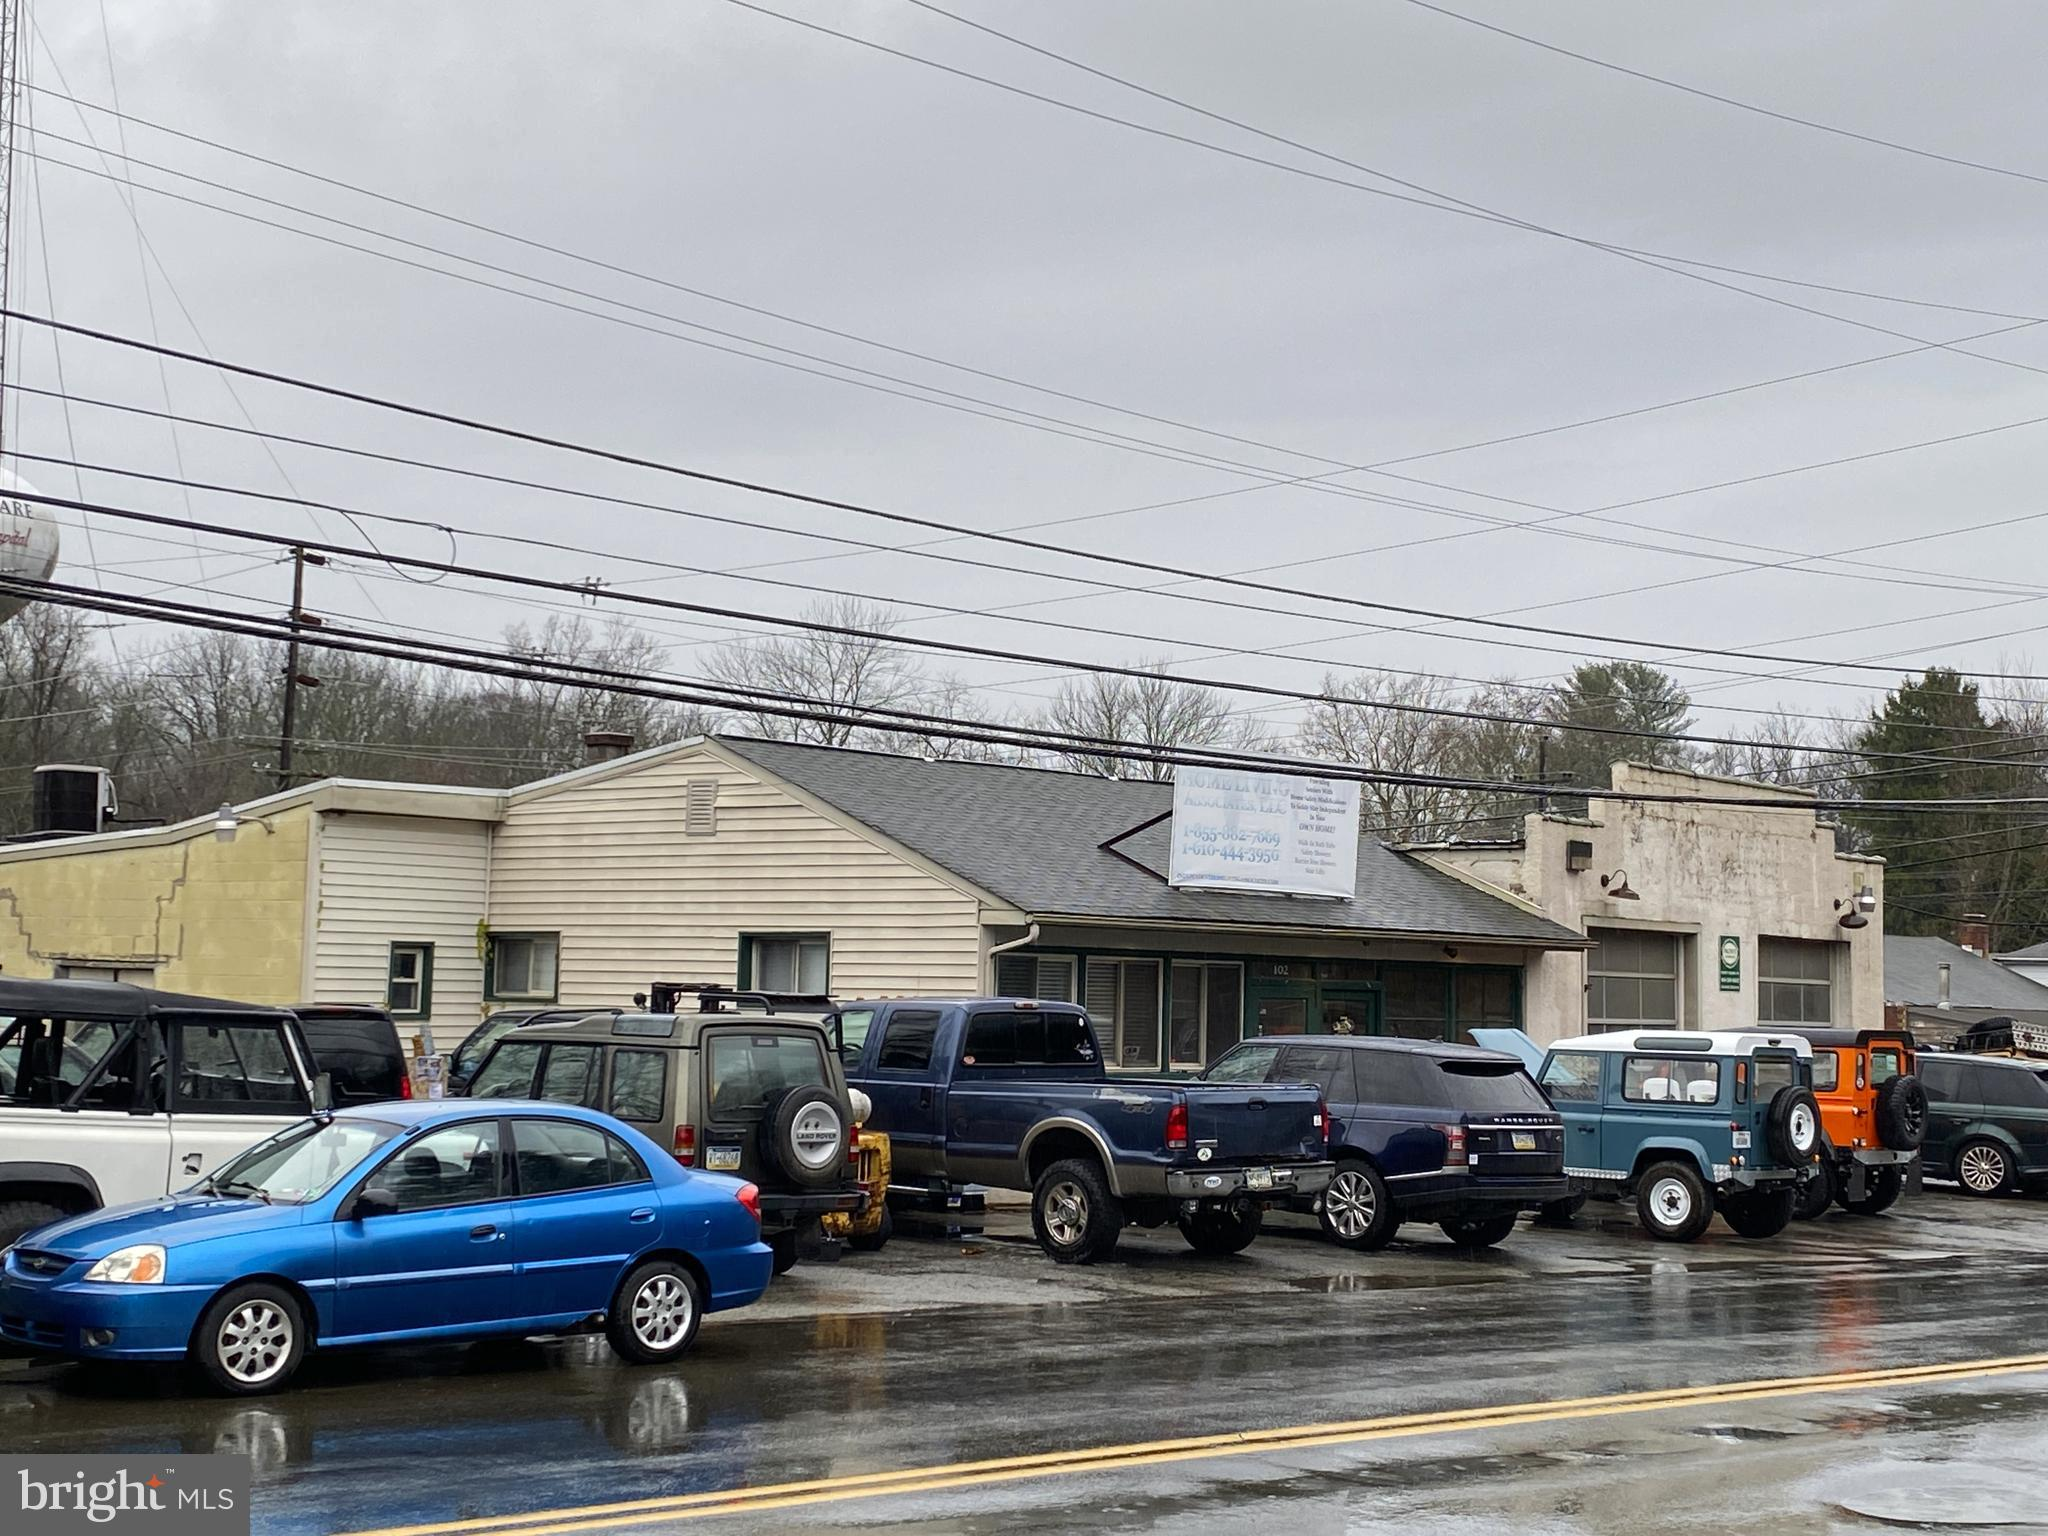 13,212 sf building includes multiple spaces. Space 1: Auto-related facility which features retail parts store space, garage and ample outdoor storage space. Space 2: General Retail space. Conveniently located with the borough  of Kennett Square. Zoned C-2. Includes PA Parcel #03-03-0163 and #03-03-0162. Built in 1948. The Borough of Kennett Square draws visitor from all over, creating more opportunity for business owners. The town's population has an average household income more than $20,000 above the national average. There is assistance offered by Kennett Borough in all facets of opening a business here, such as ensuring compliance with any applicable building codes, offering businesses cooperative advertising and marketing opportunities. The Borough also provides business owners support and networking resources such as Southern Chester County Chamber of Commerce, the Historic Kennett Square organization, and the offices of the Borough of Kennett Square. Just a mile off the US-1 interchange.